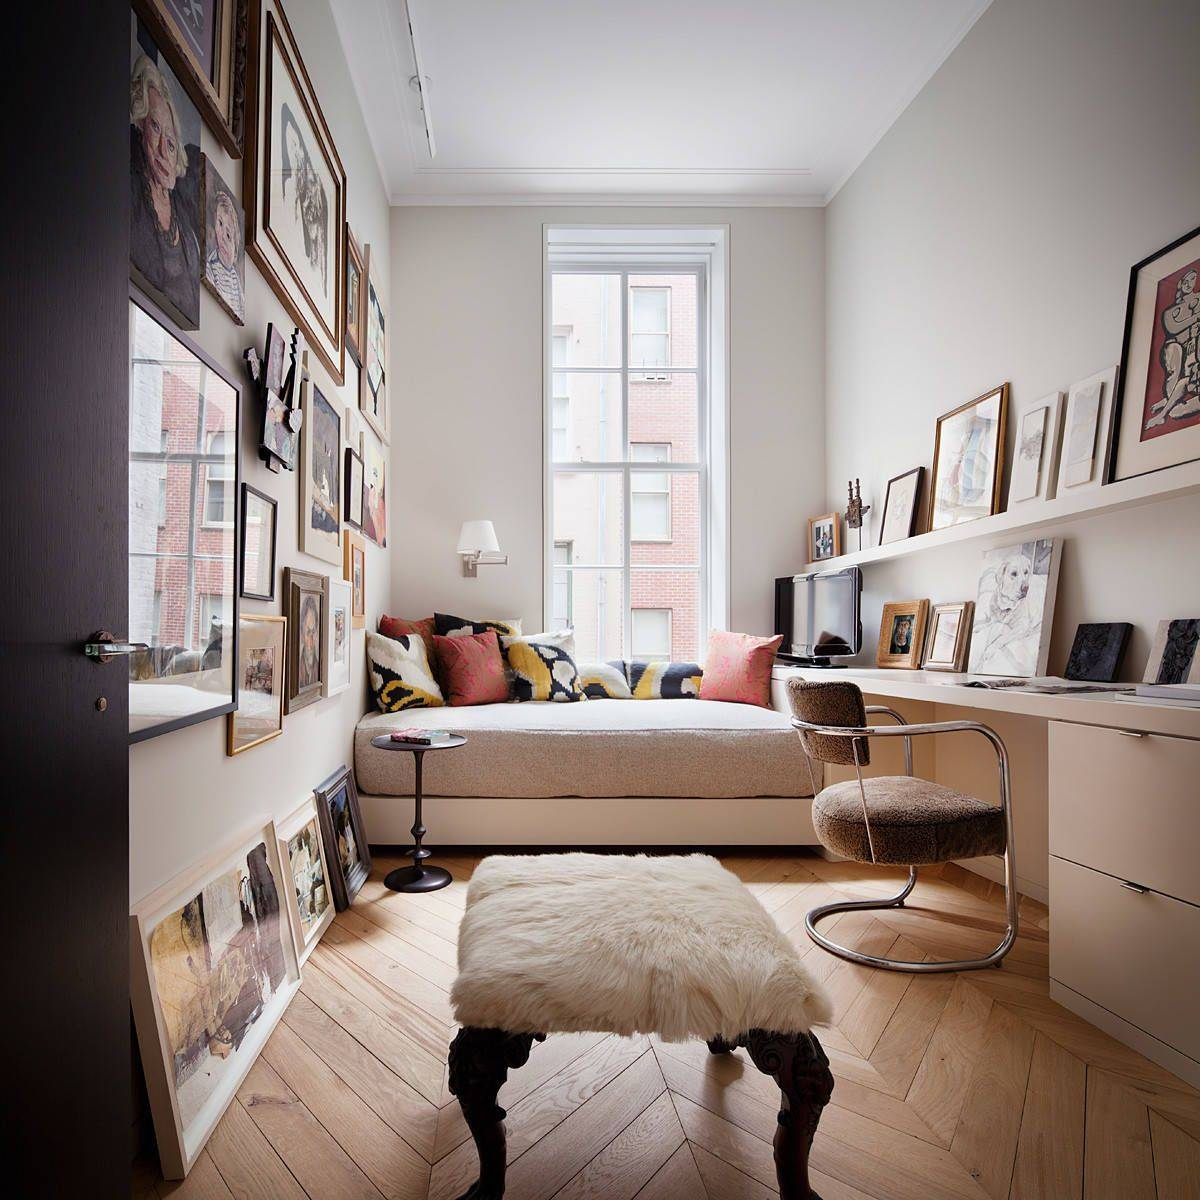 Small home office with platform bed and beautiful framed photographs and art pieces all around!